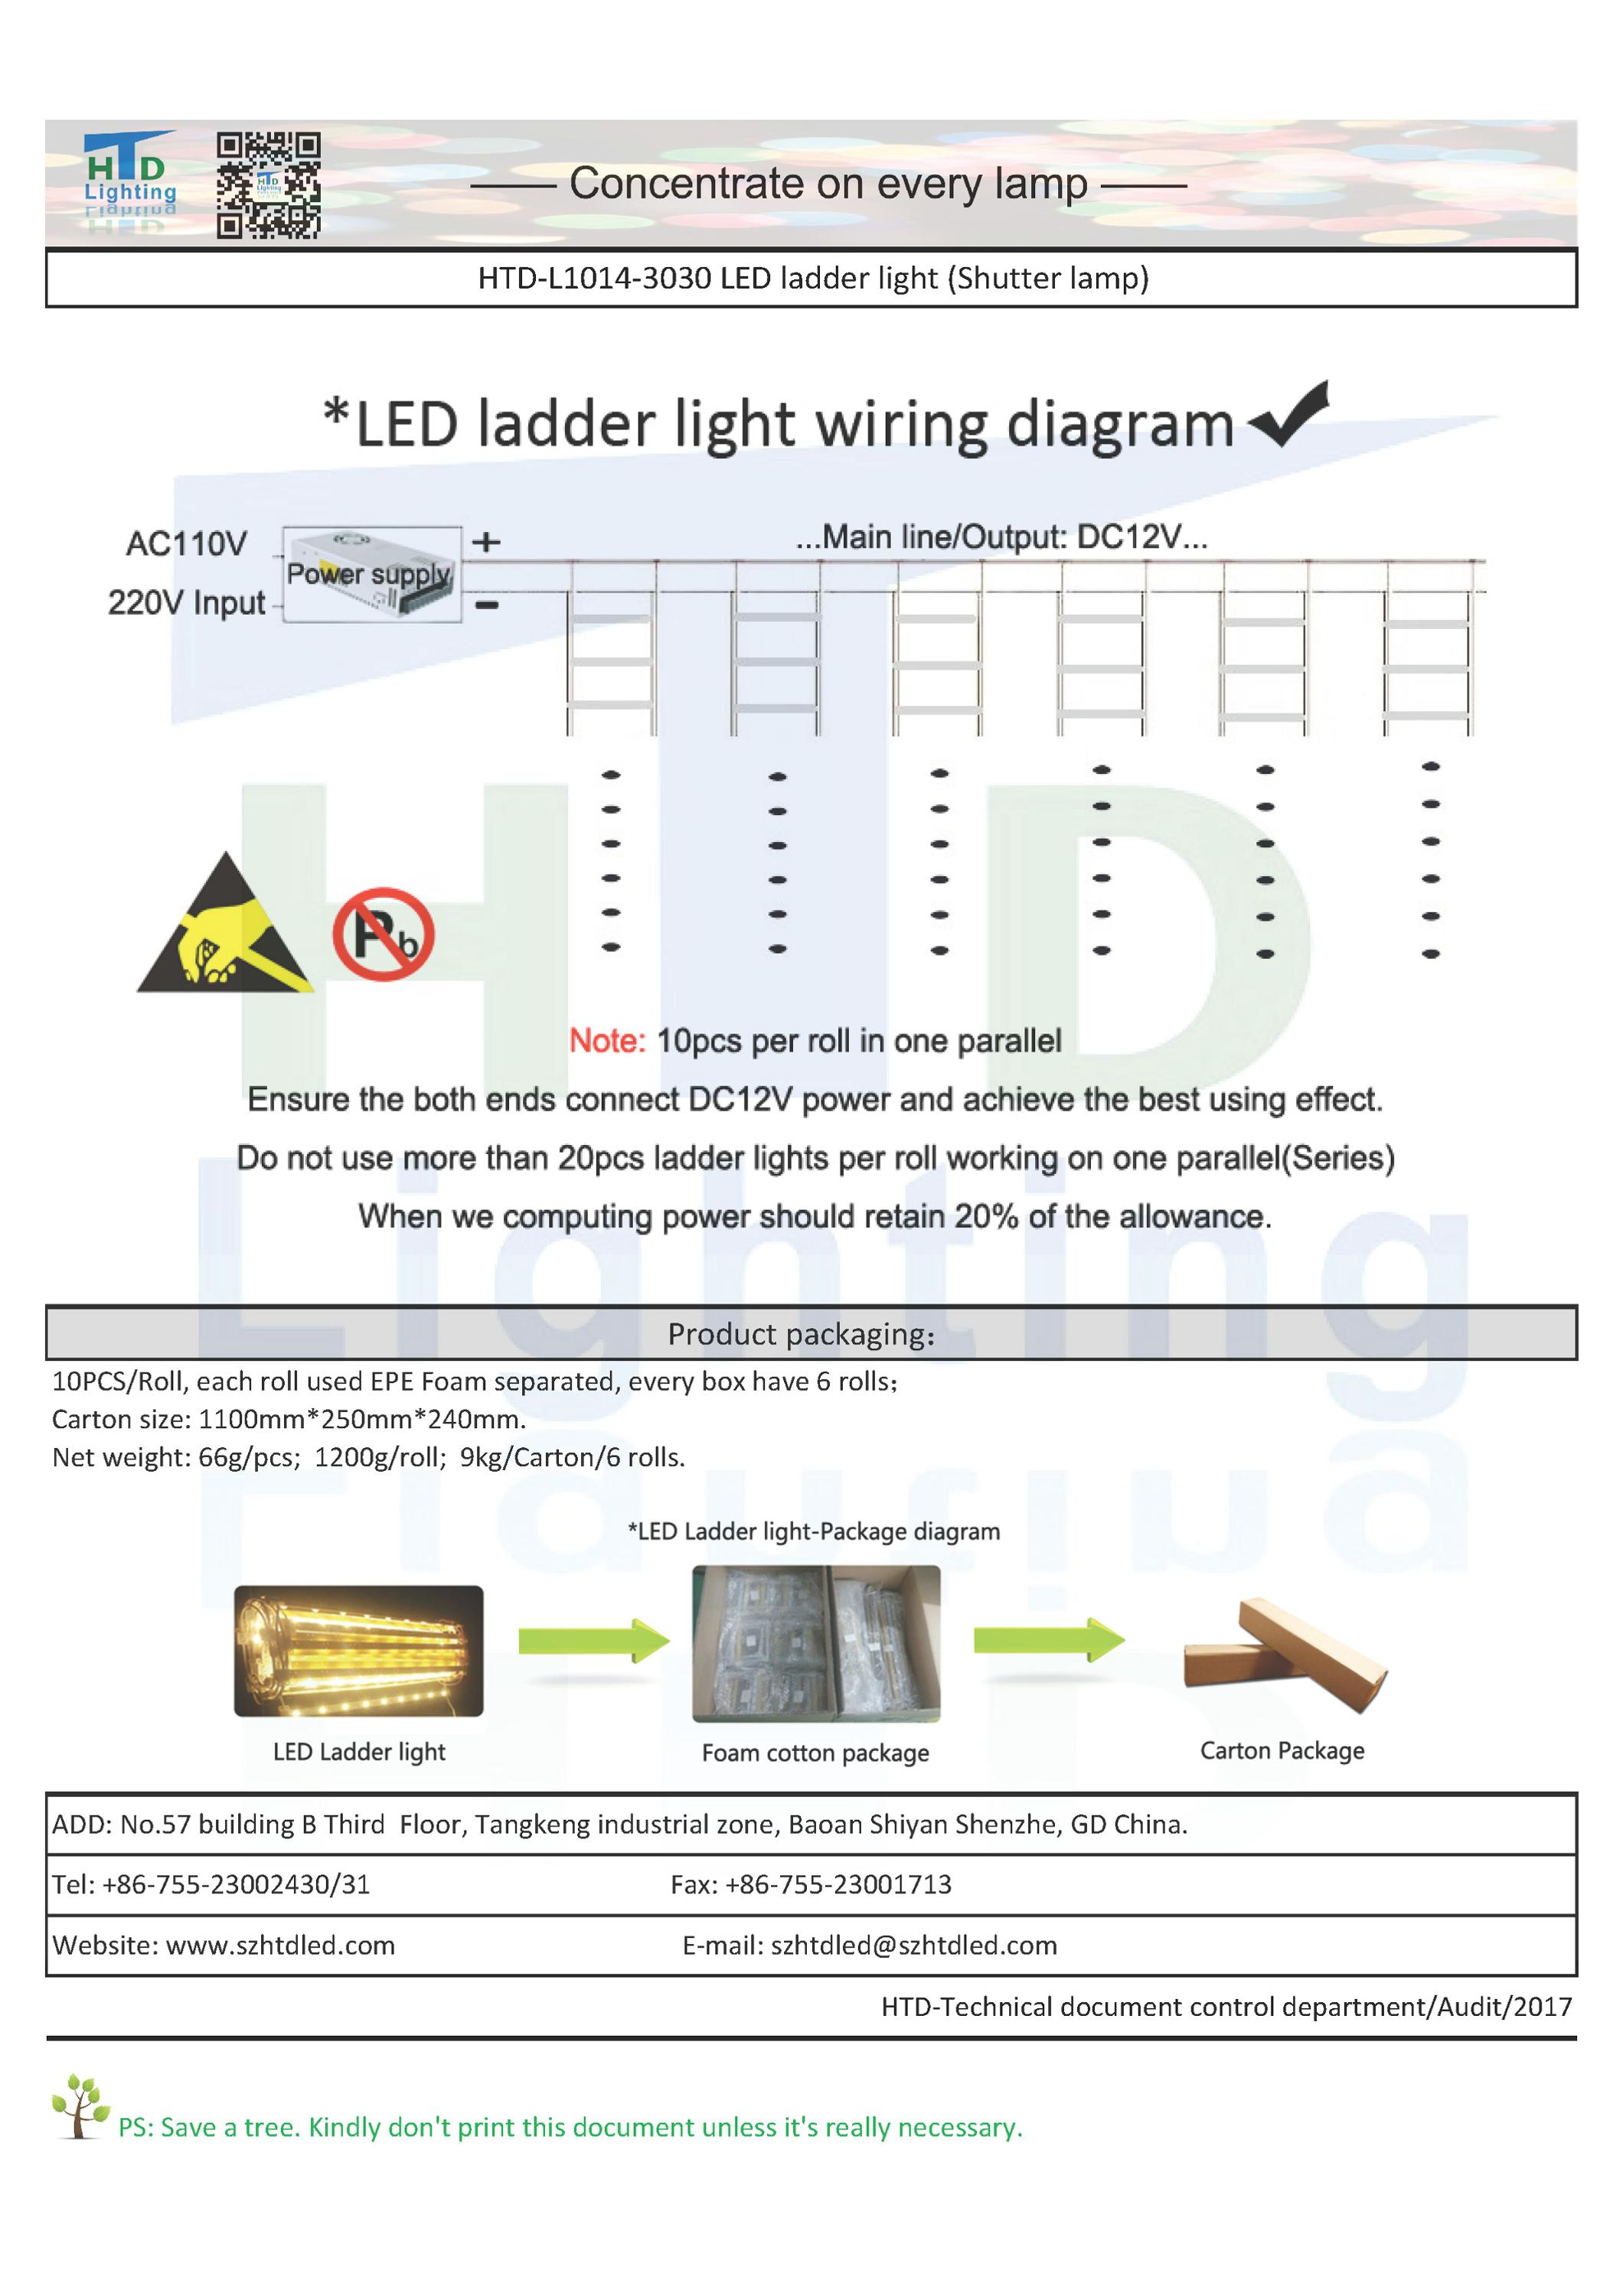 Large Light Boxes Illumination Backlight 80 X 20 Led Ladder Tree Wiring Diagram Htd L1014 3030 2017htd Spec 3